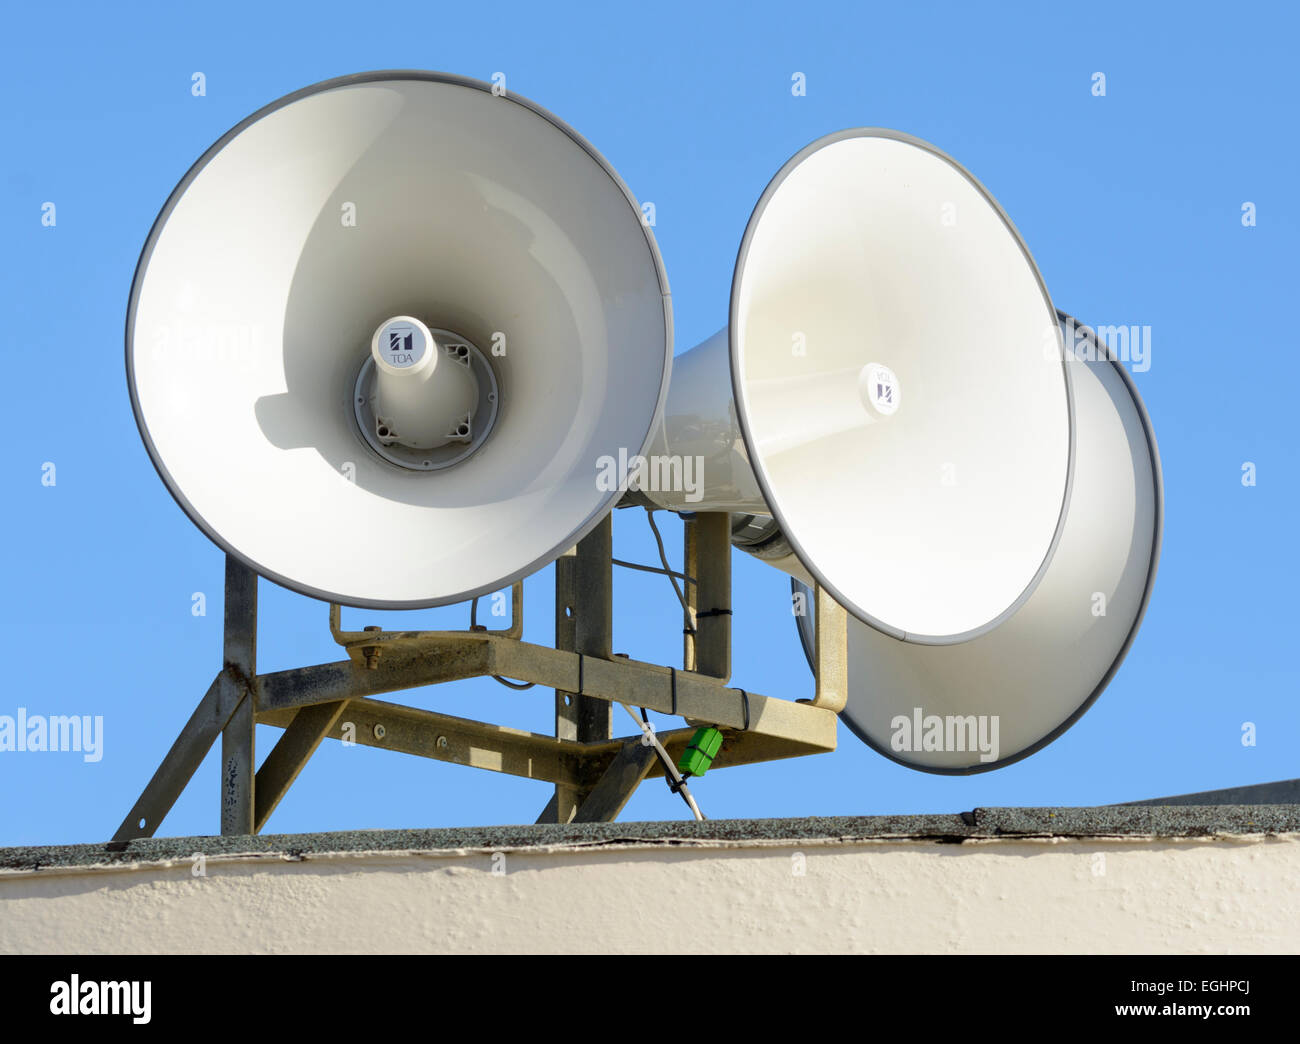 2 megaphones on top of a building as part of a public address system. - Stock Image